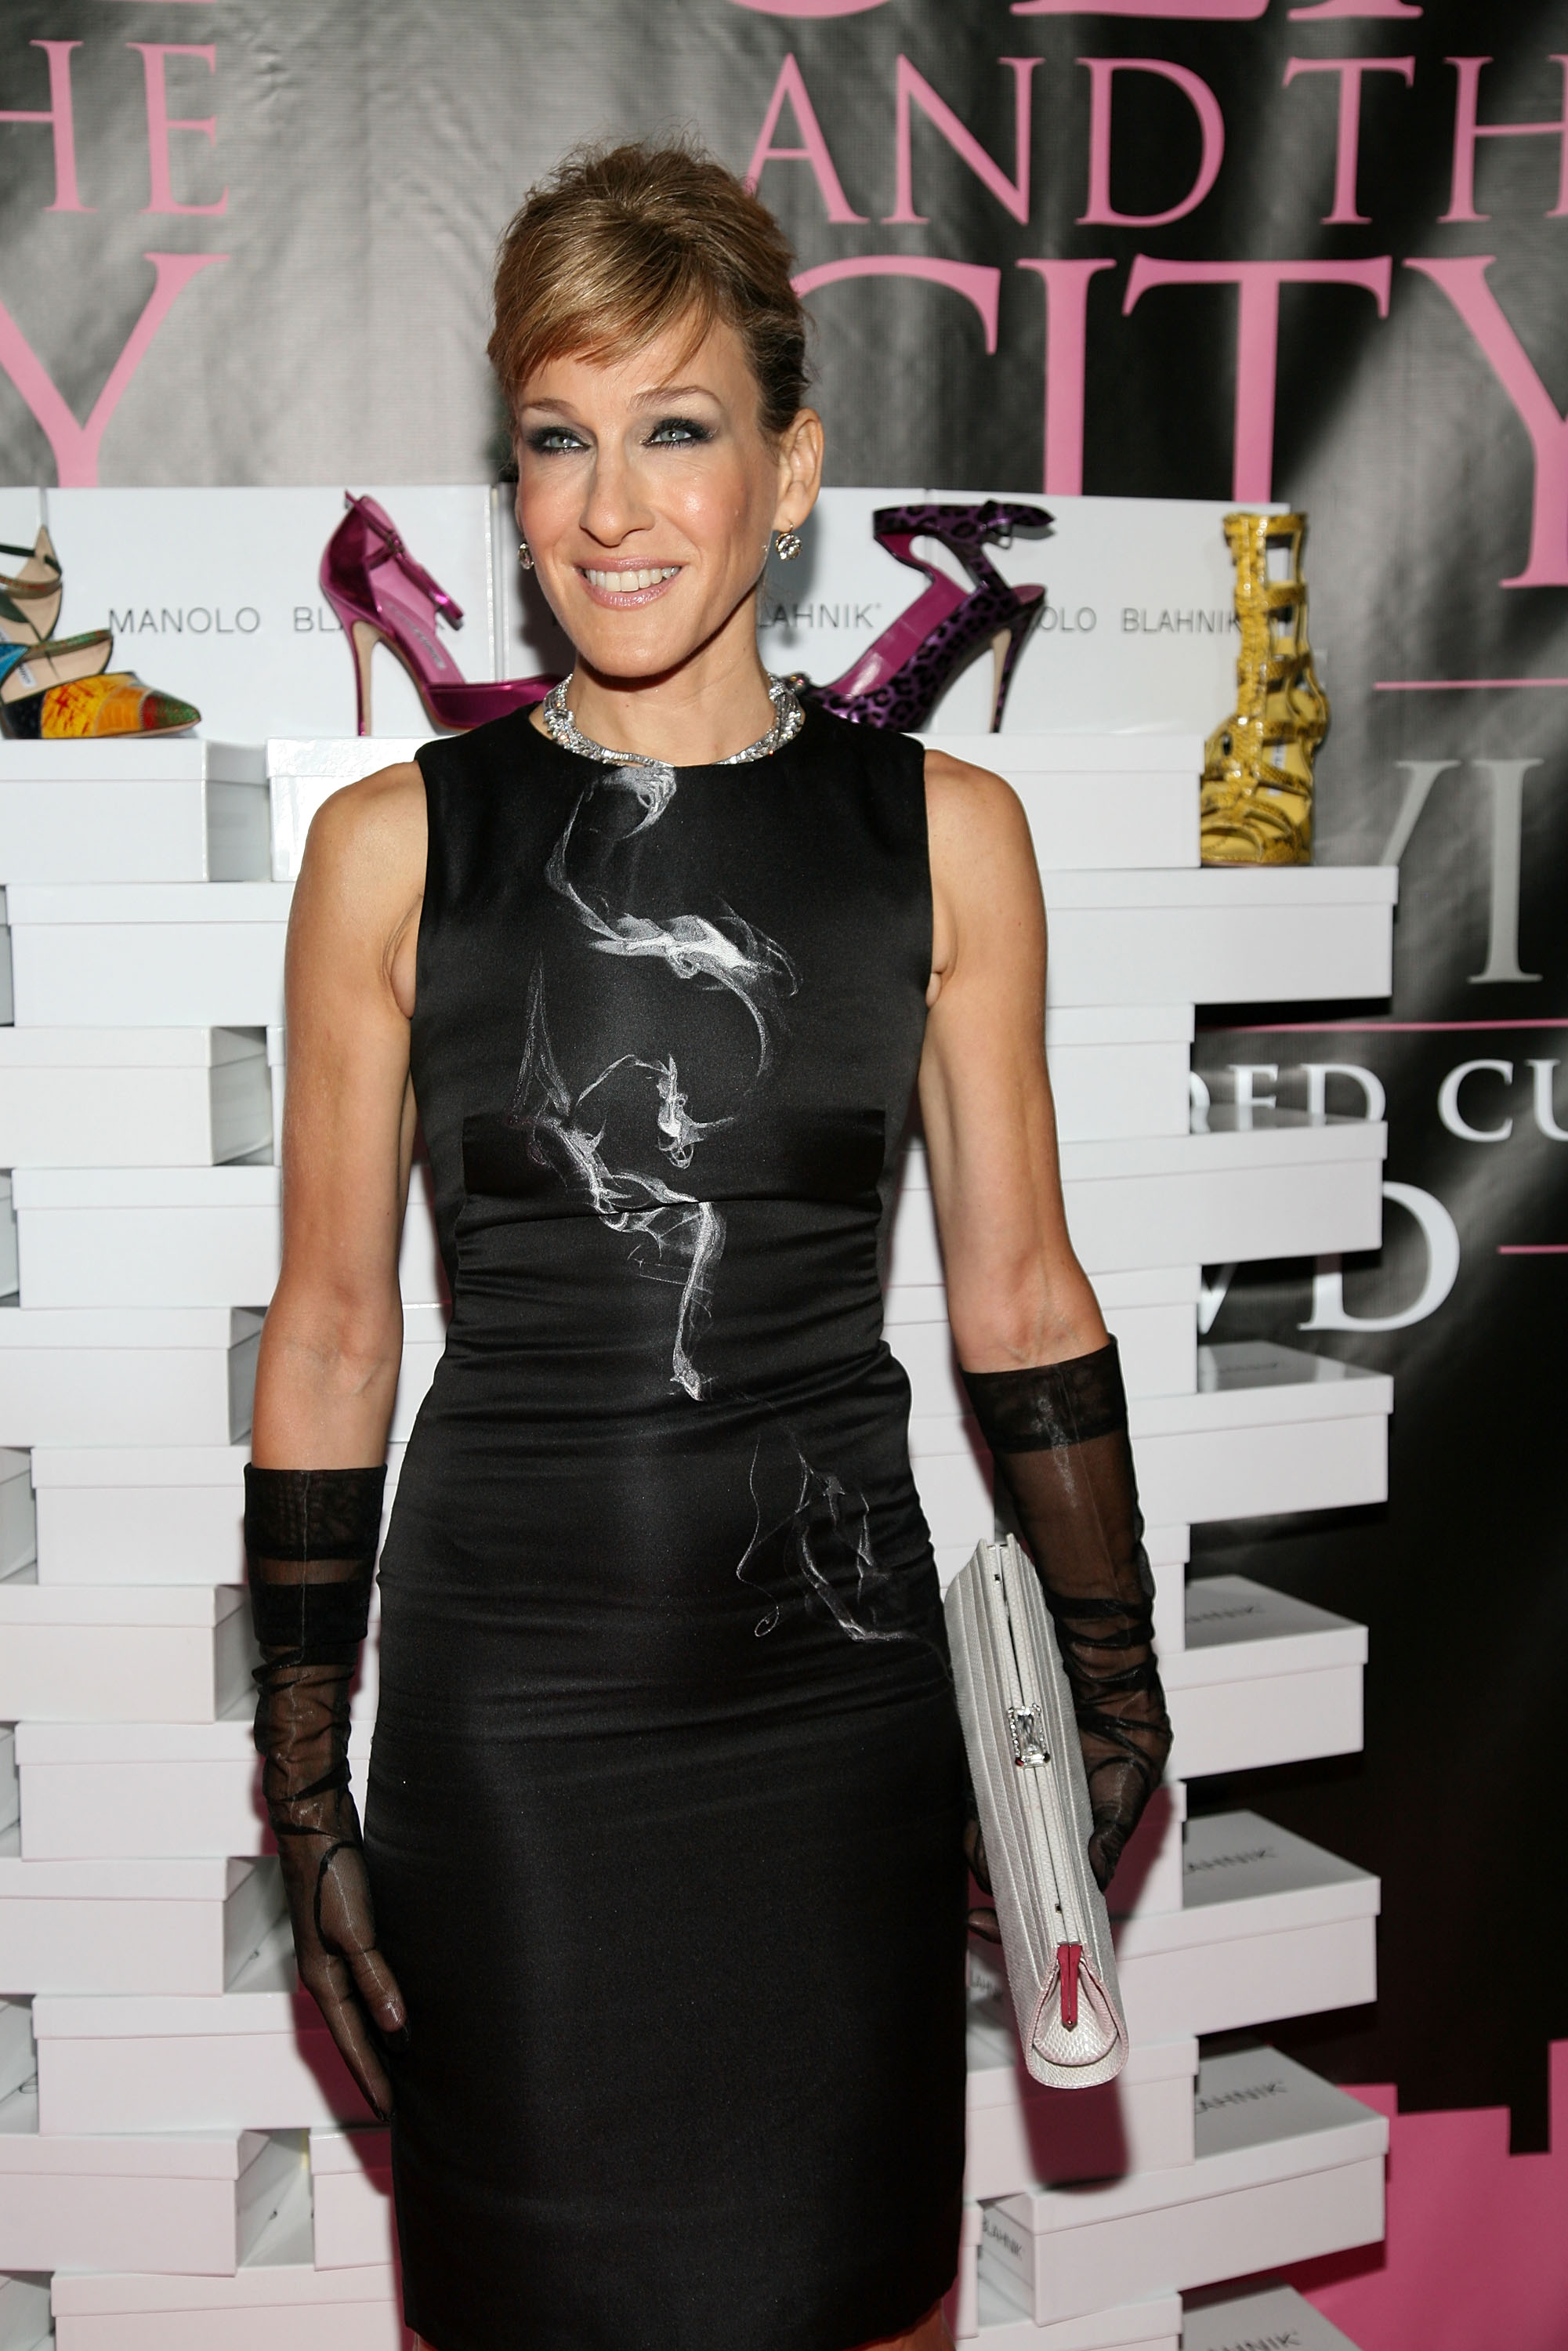 03853_Celebutopia-Sarah_Jessica_Parker-Sex_and_the_City_The_Movie_DVD_launch_in_New_York_City-01_122_763lo.jpg